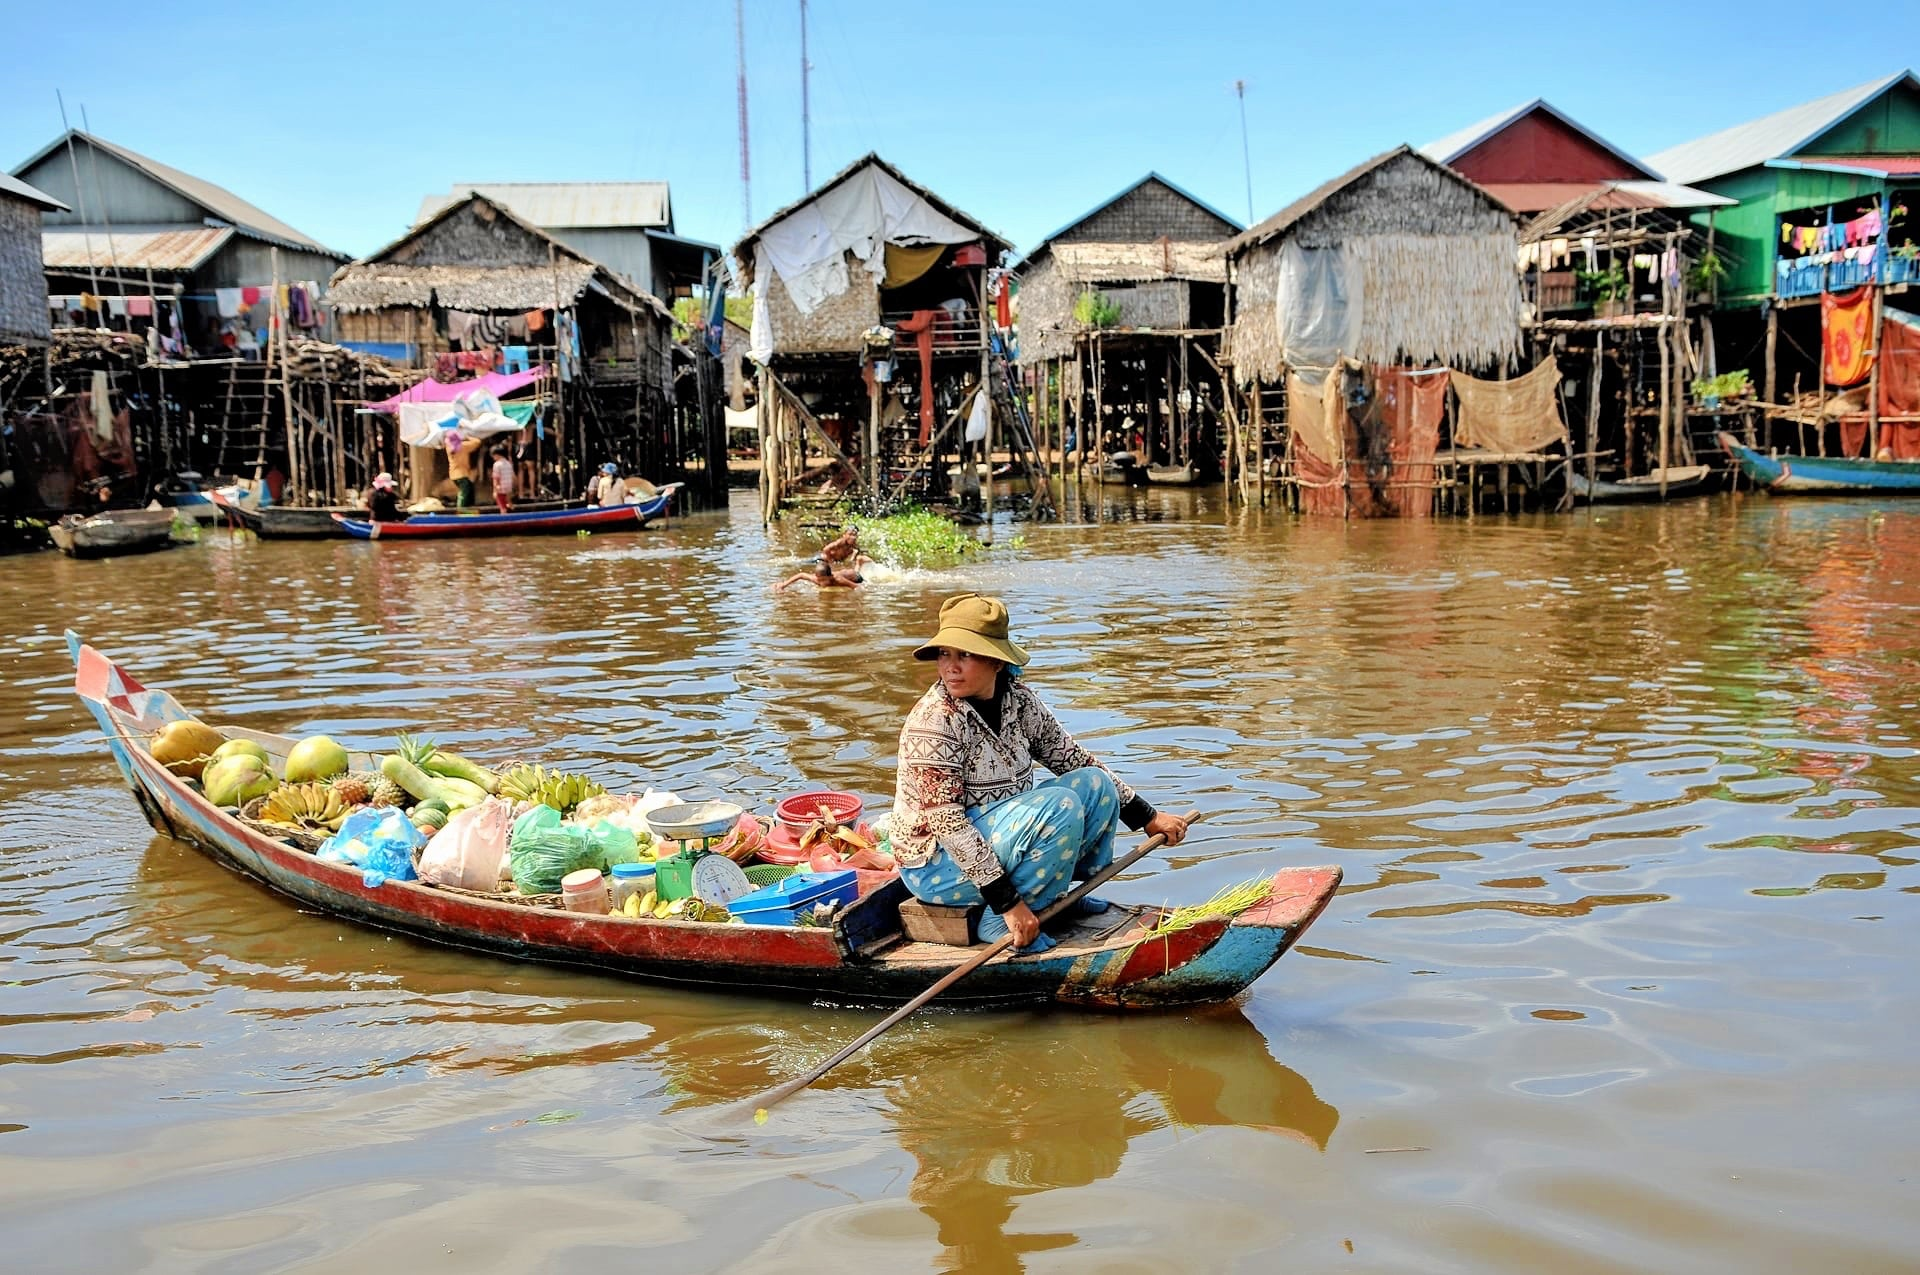 Visiting the Floating Village of Kompong Phluk on Your Own